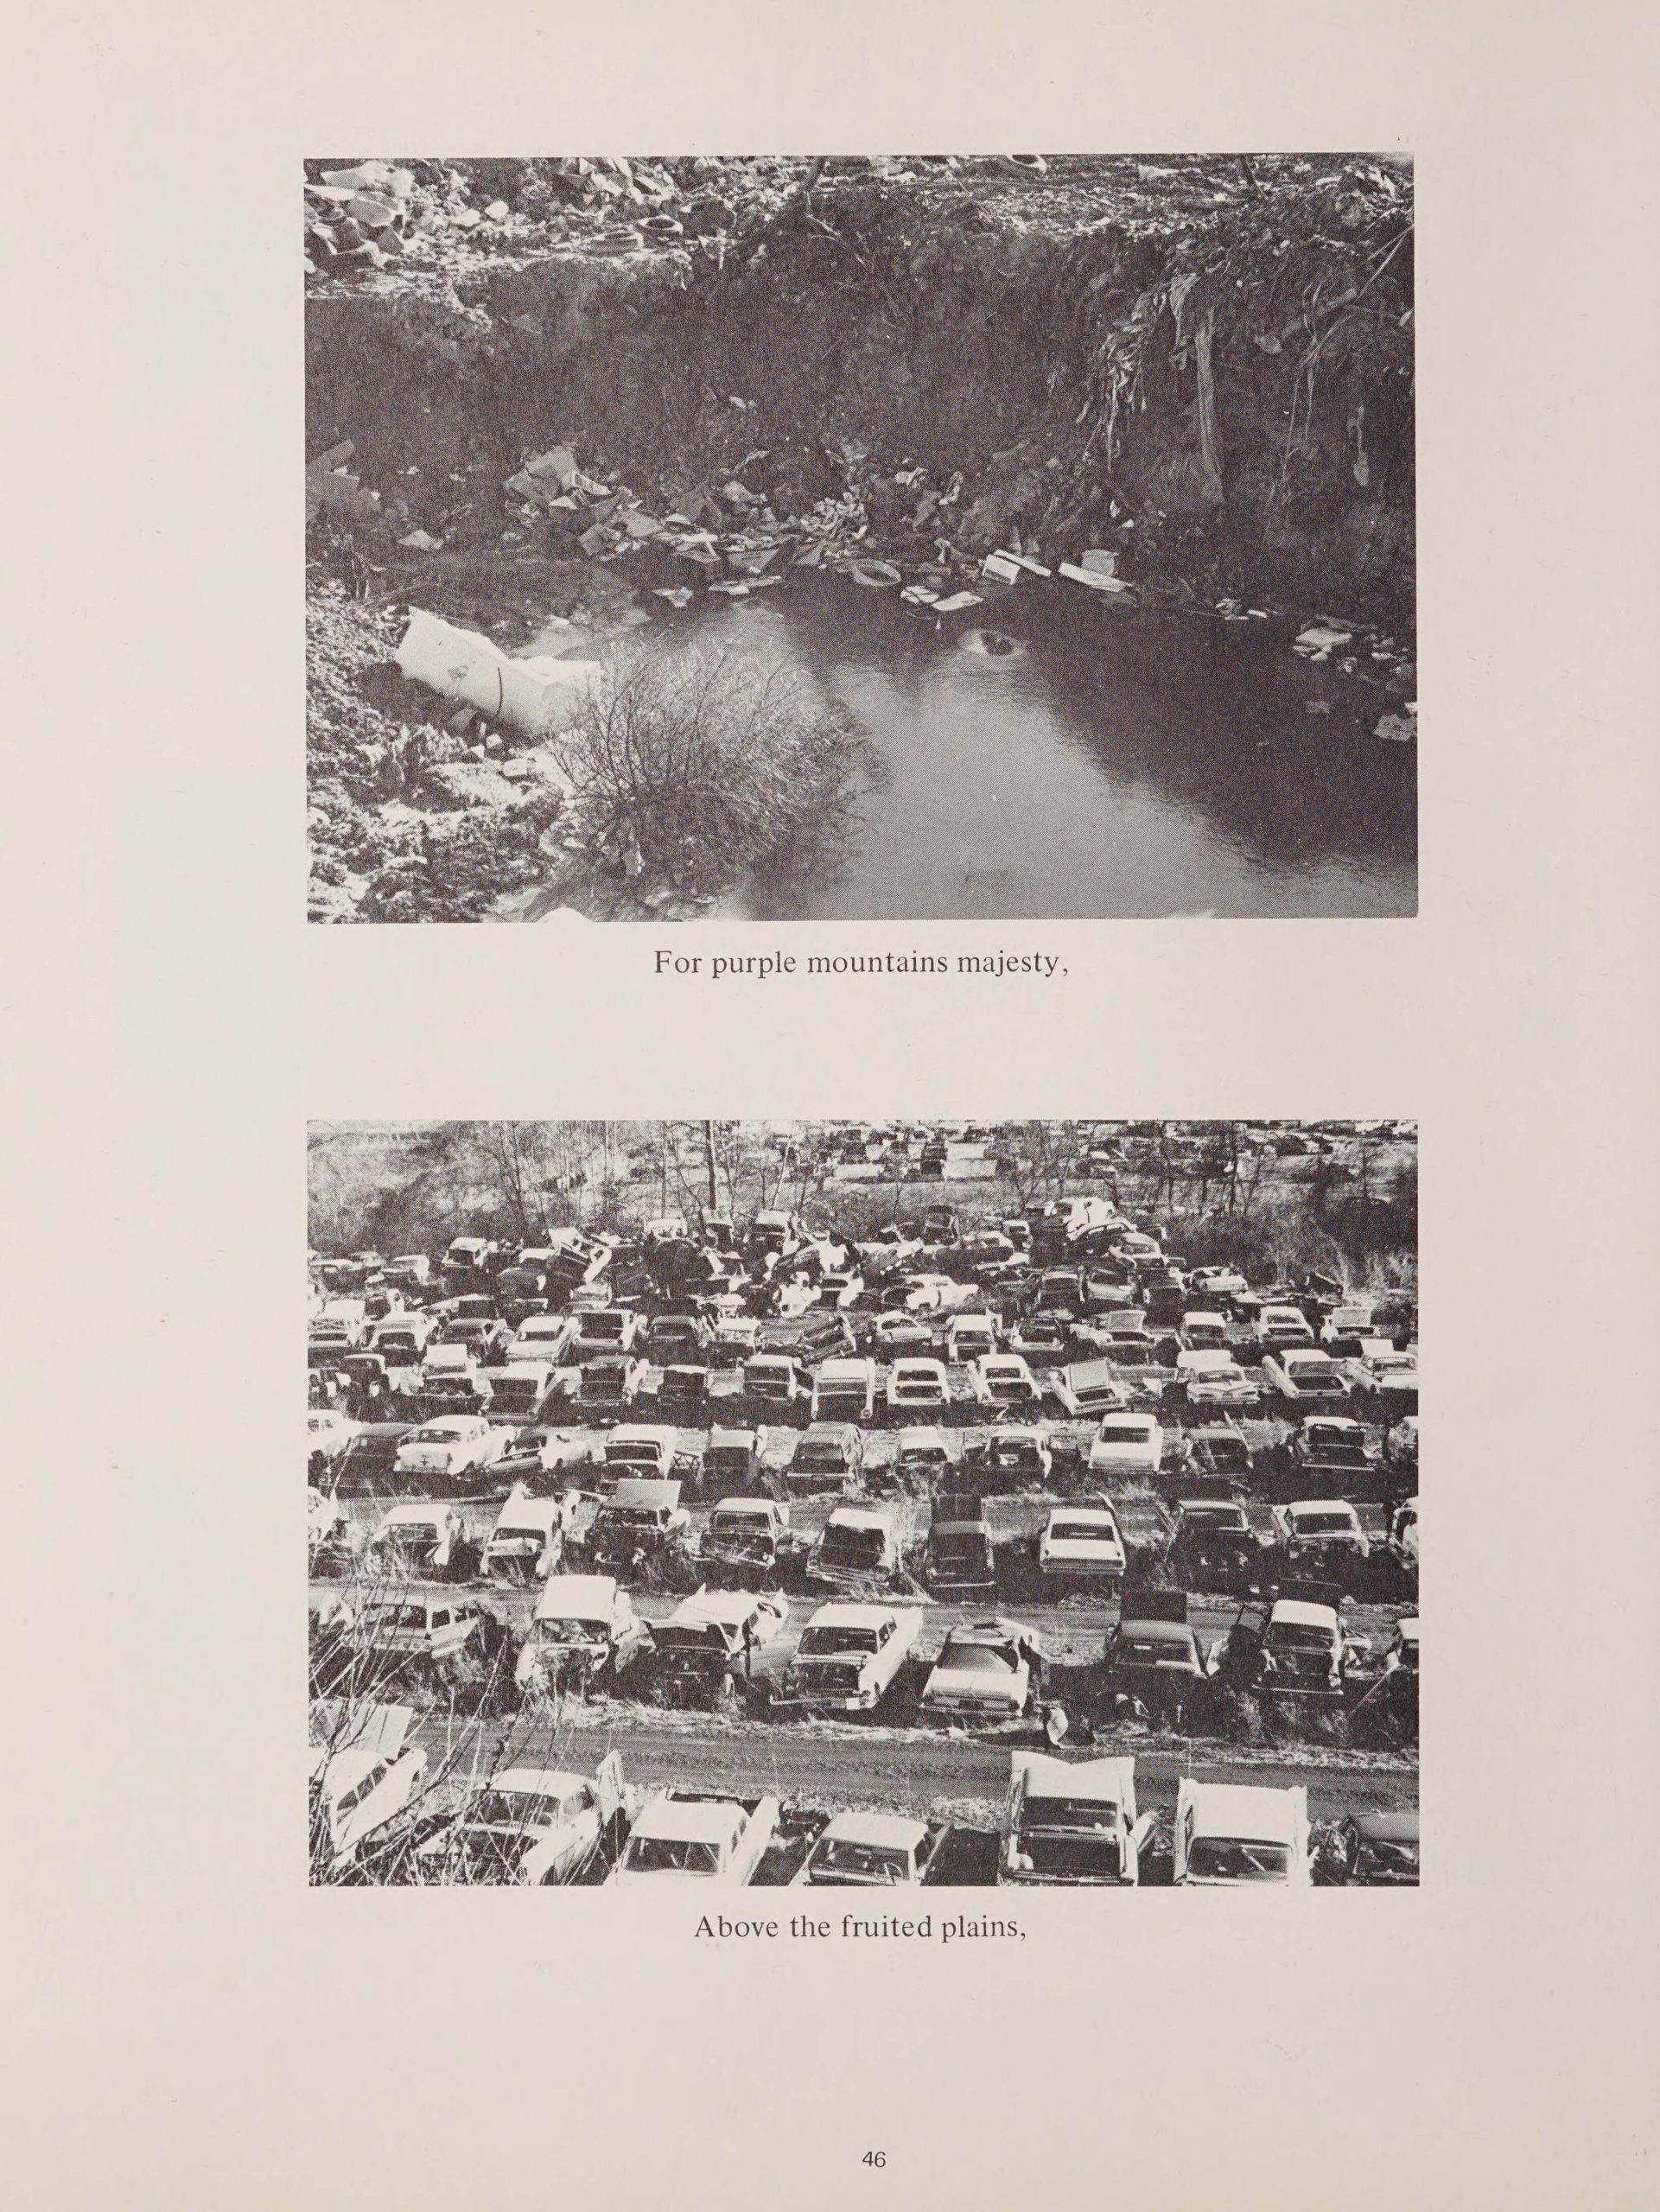 """Two pictures on top of each other. The first one's caption is """"For purple mountains majesty."""" The image itself is of a small pond with pollution. The bottom picture is of a lot with several rows of broken cars. The caption for the second photo is """"Above the fruited plains."""""""